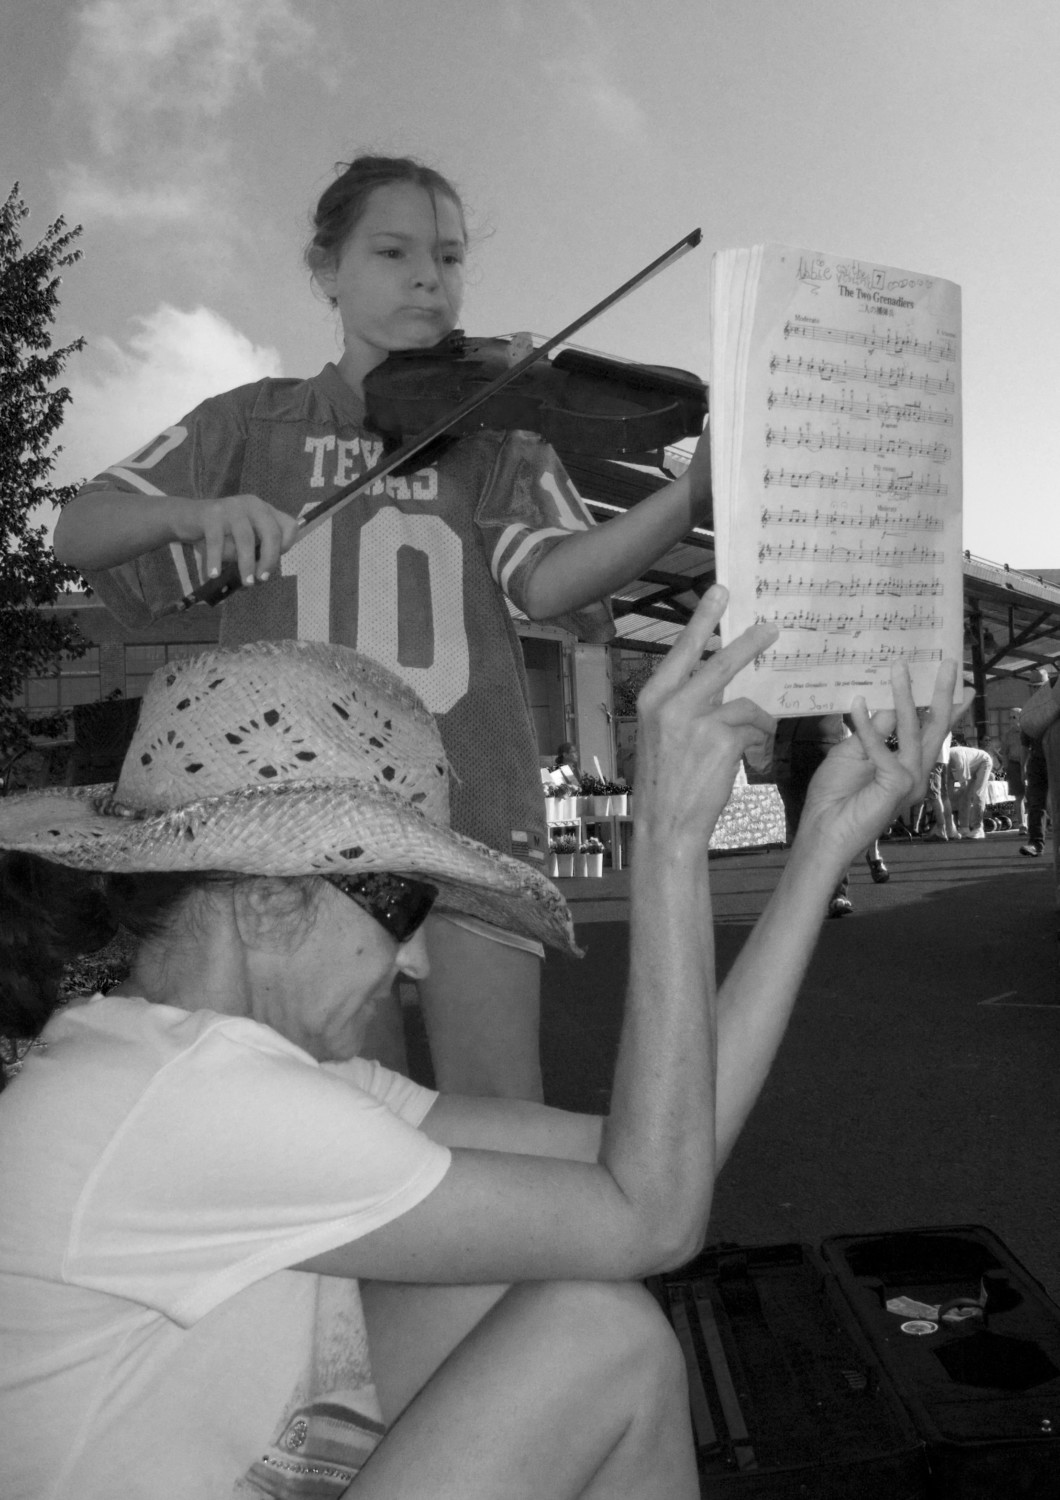 Playing violin, Bloomington, Indiana, August 2008